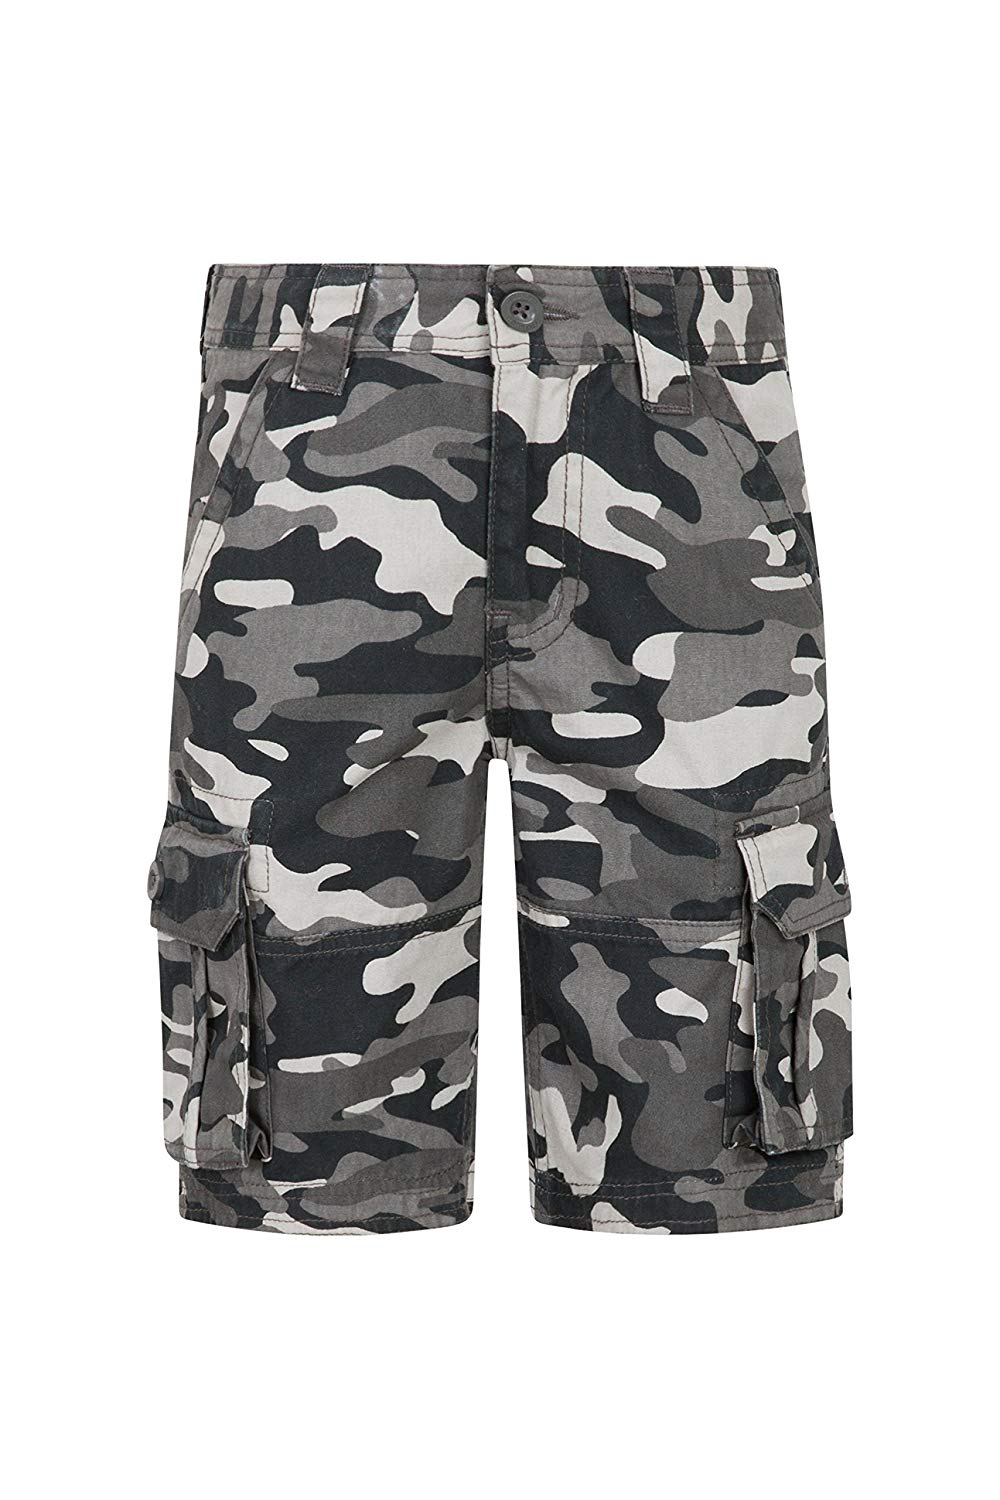 81a3694ecb91 Get Quotations · Mountain Warehouse Kids Camo Cargo Shorts - 100% Cotton  Summer Pants